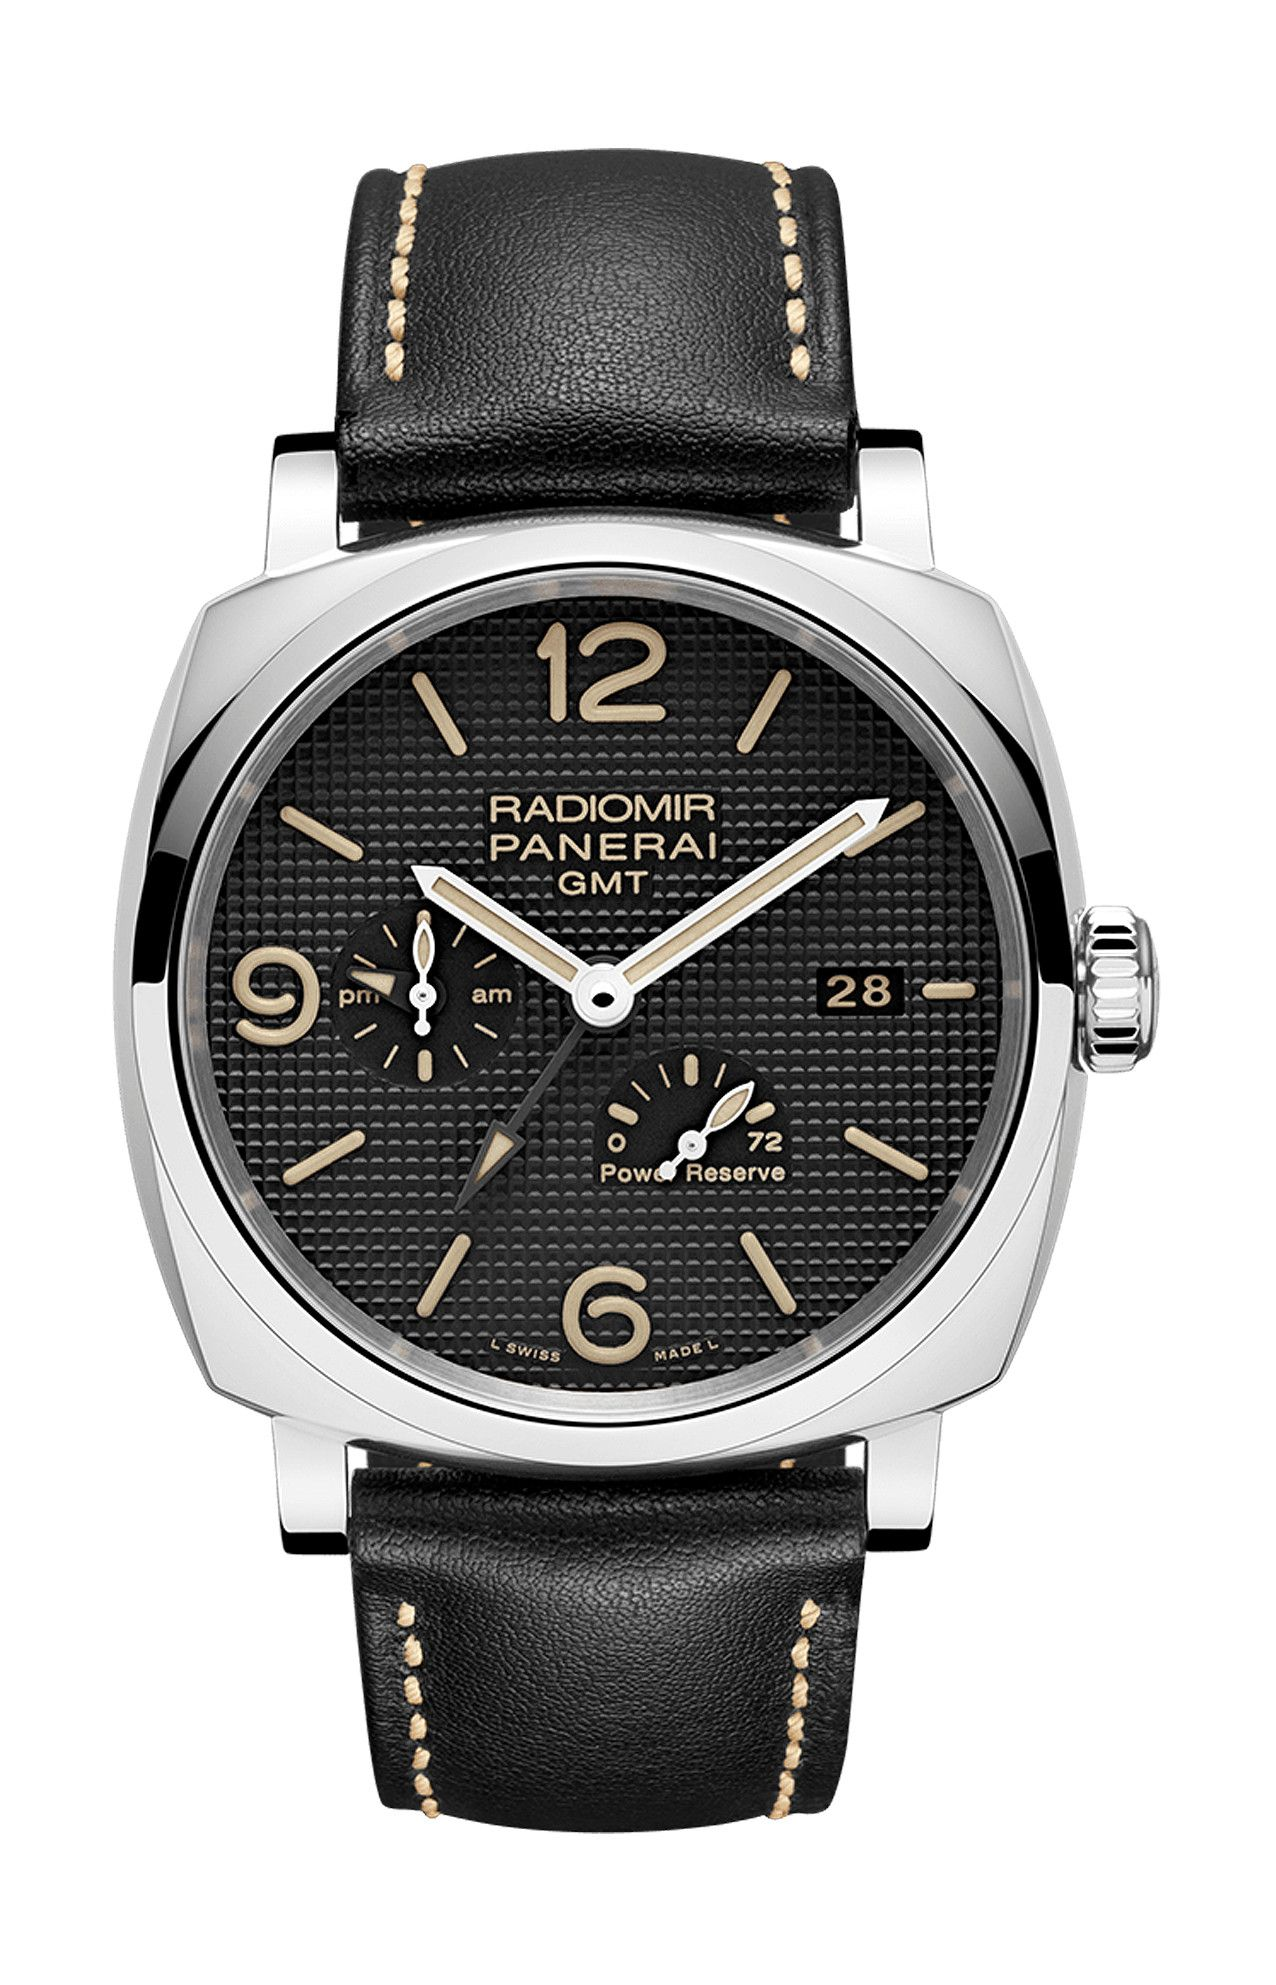 RADIOMIR 1940 3 DAYS GMT POWER RESERVE AUTOMATIC ACCIAIO – 45MM - PAM00628